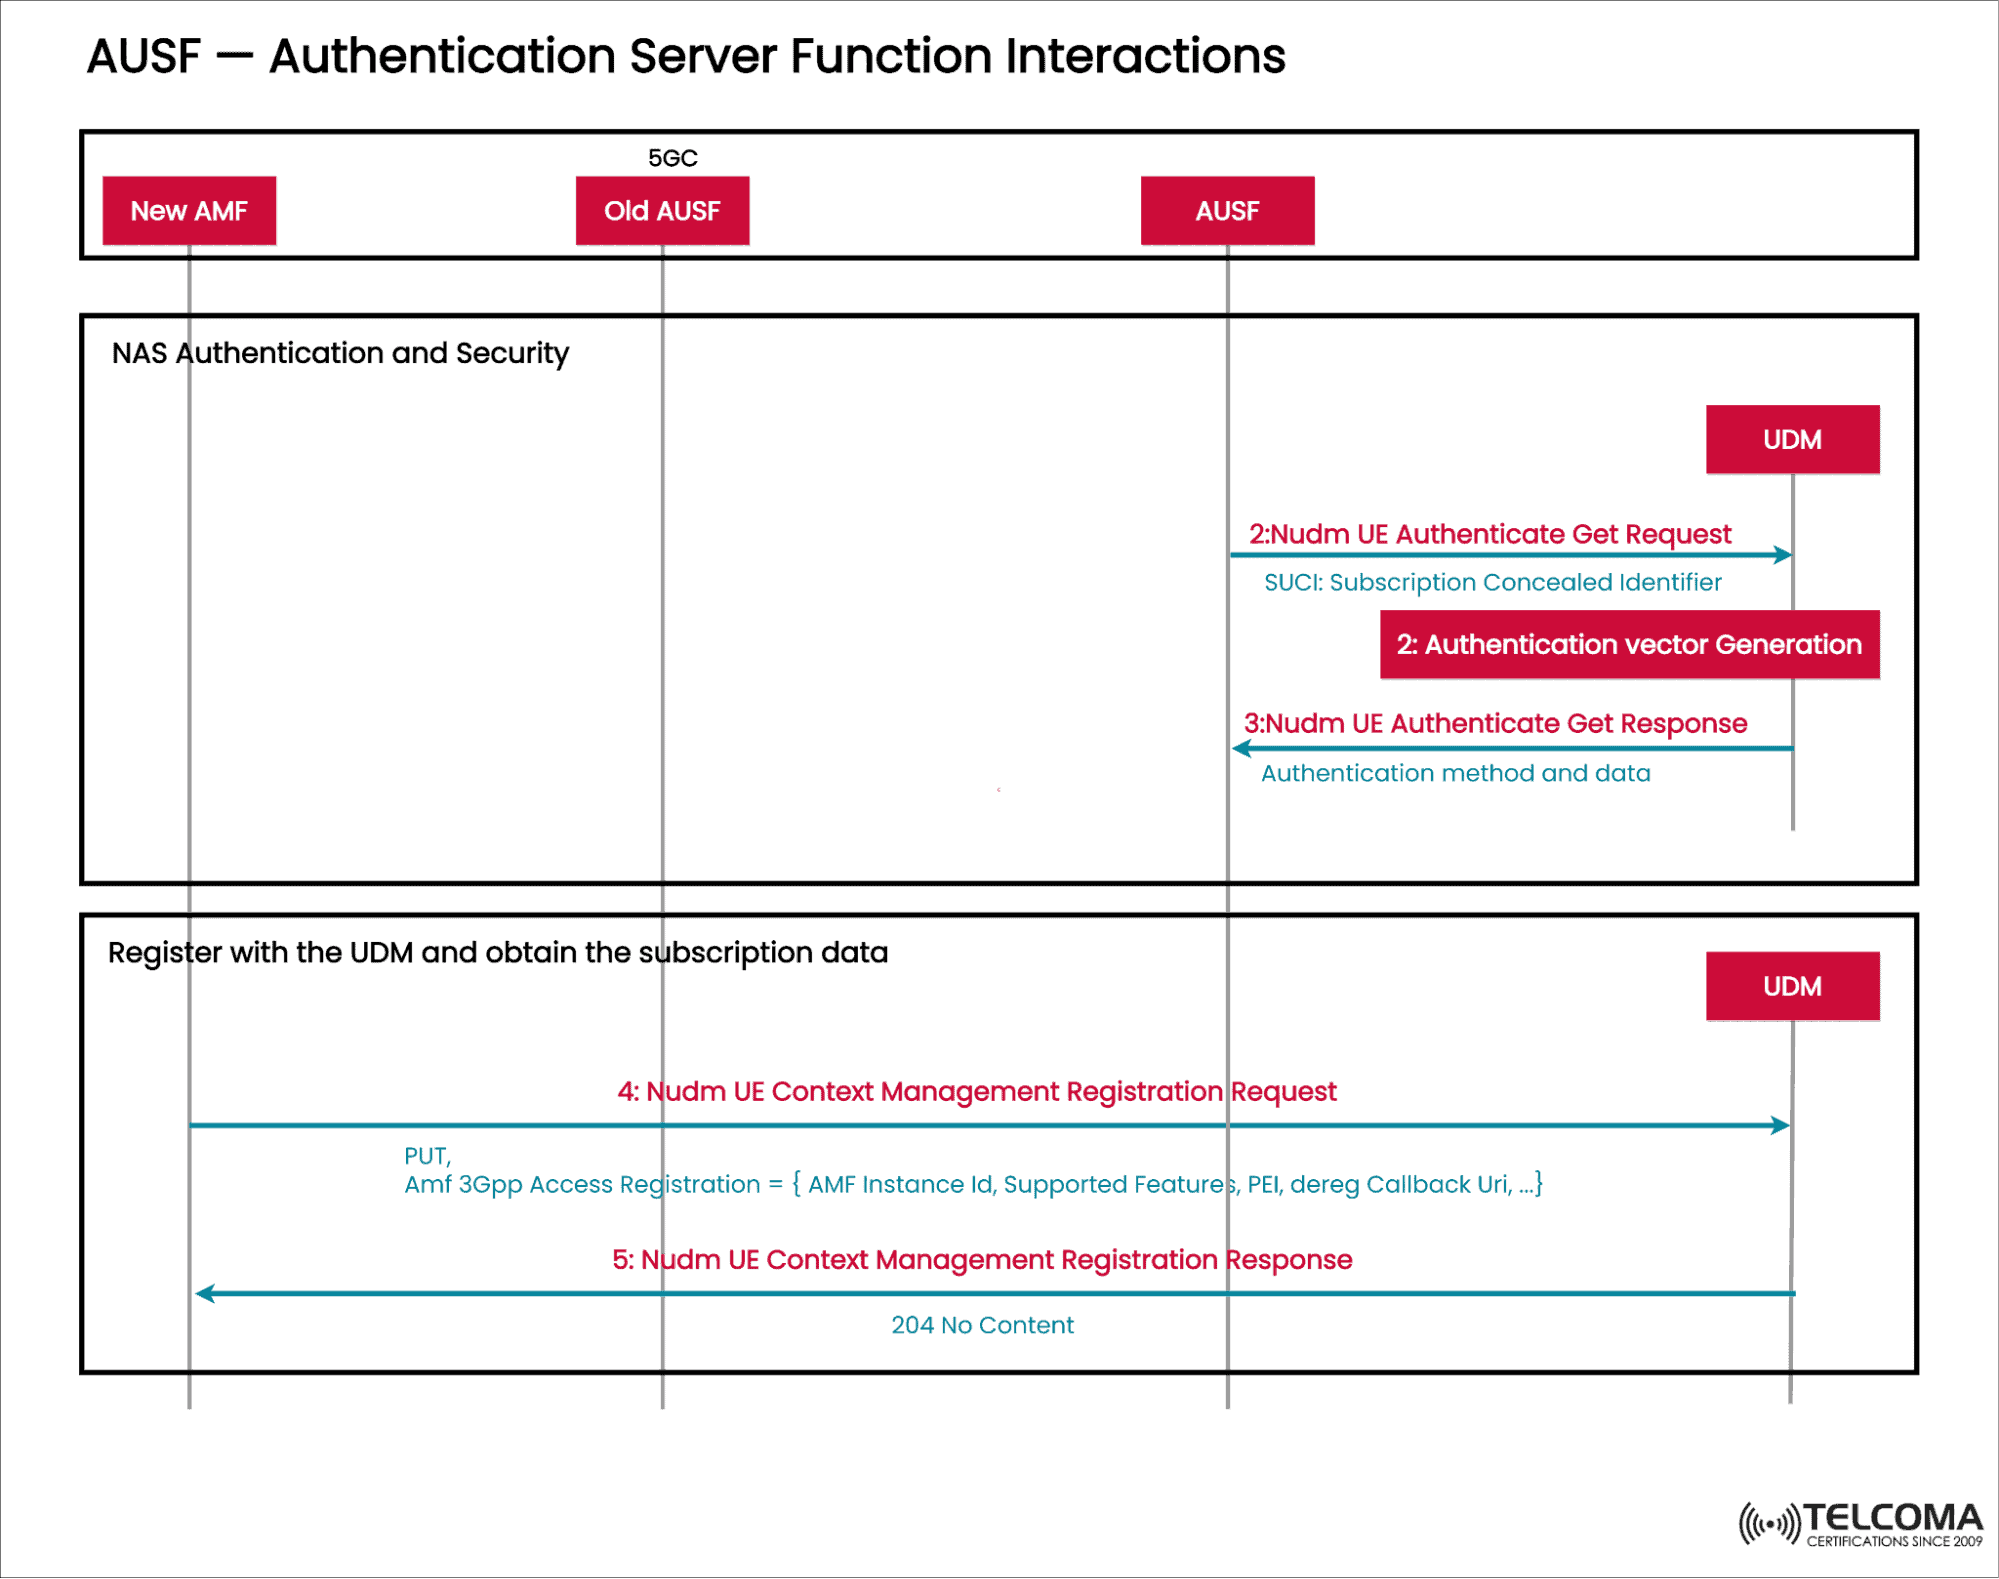 AUSF - Authentication Server Function